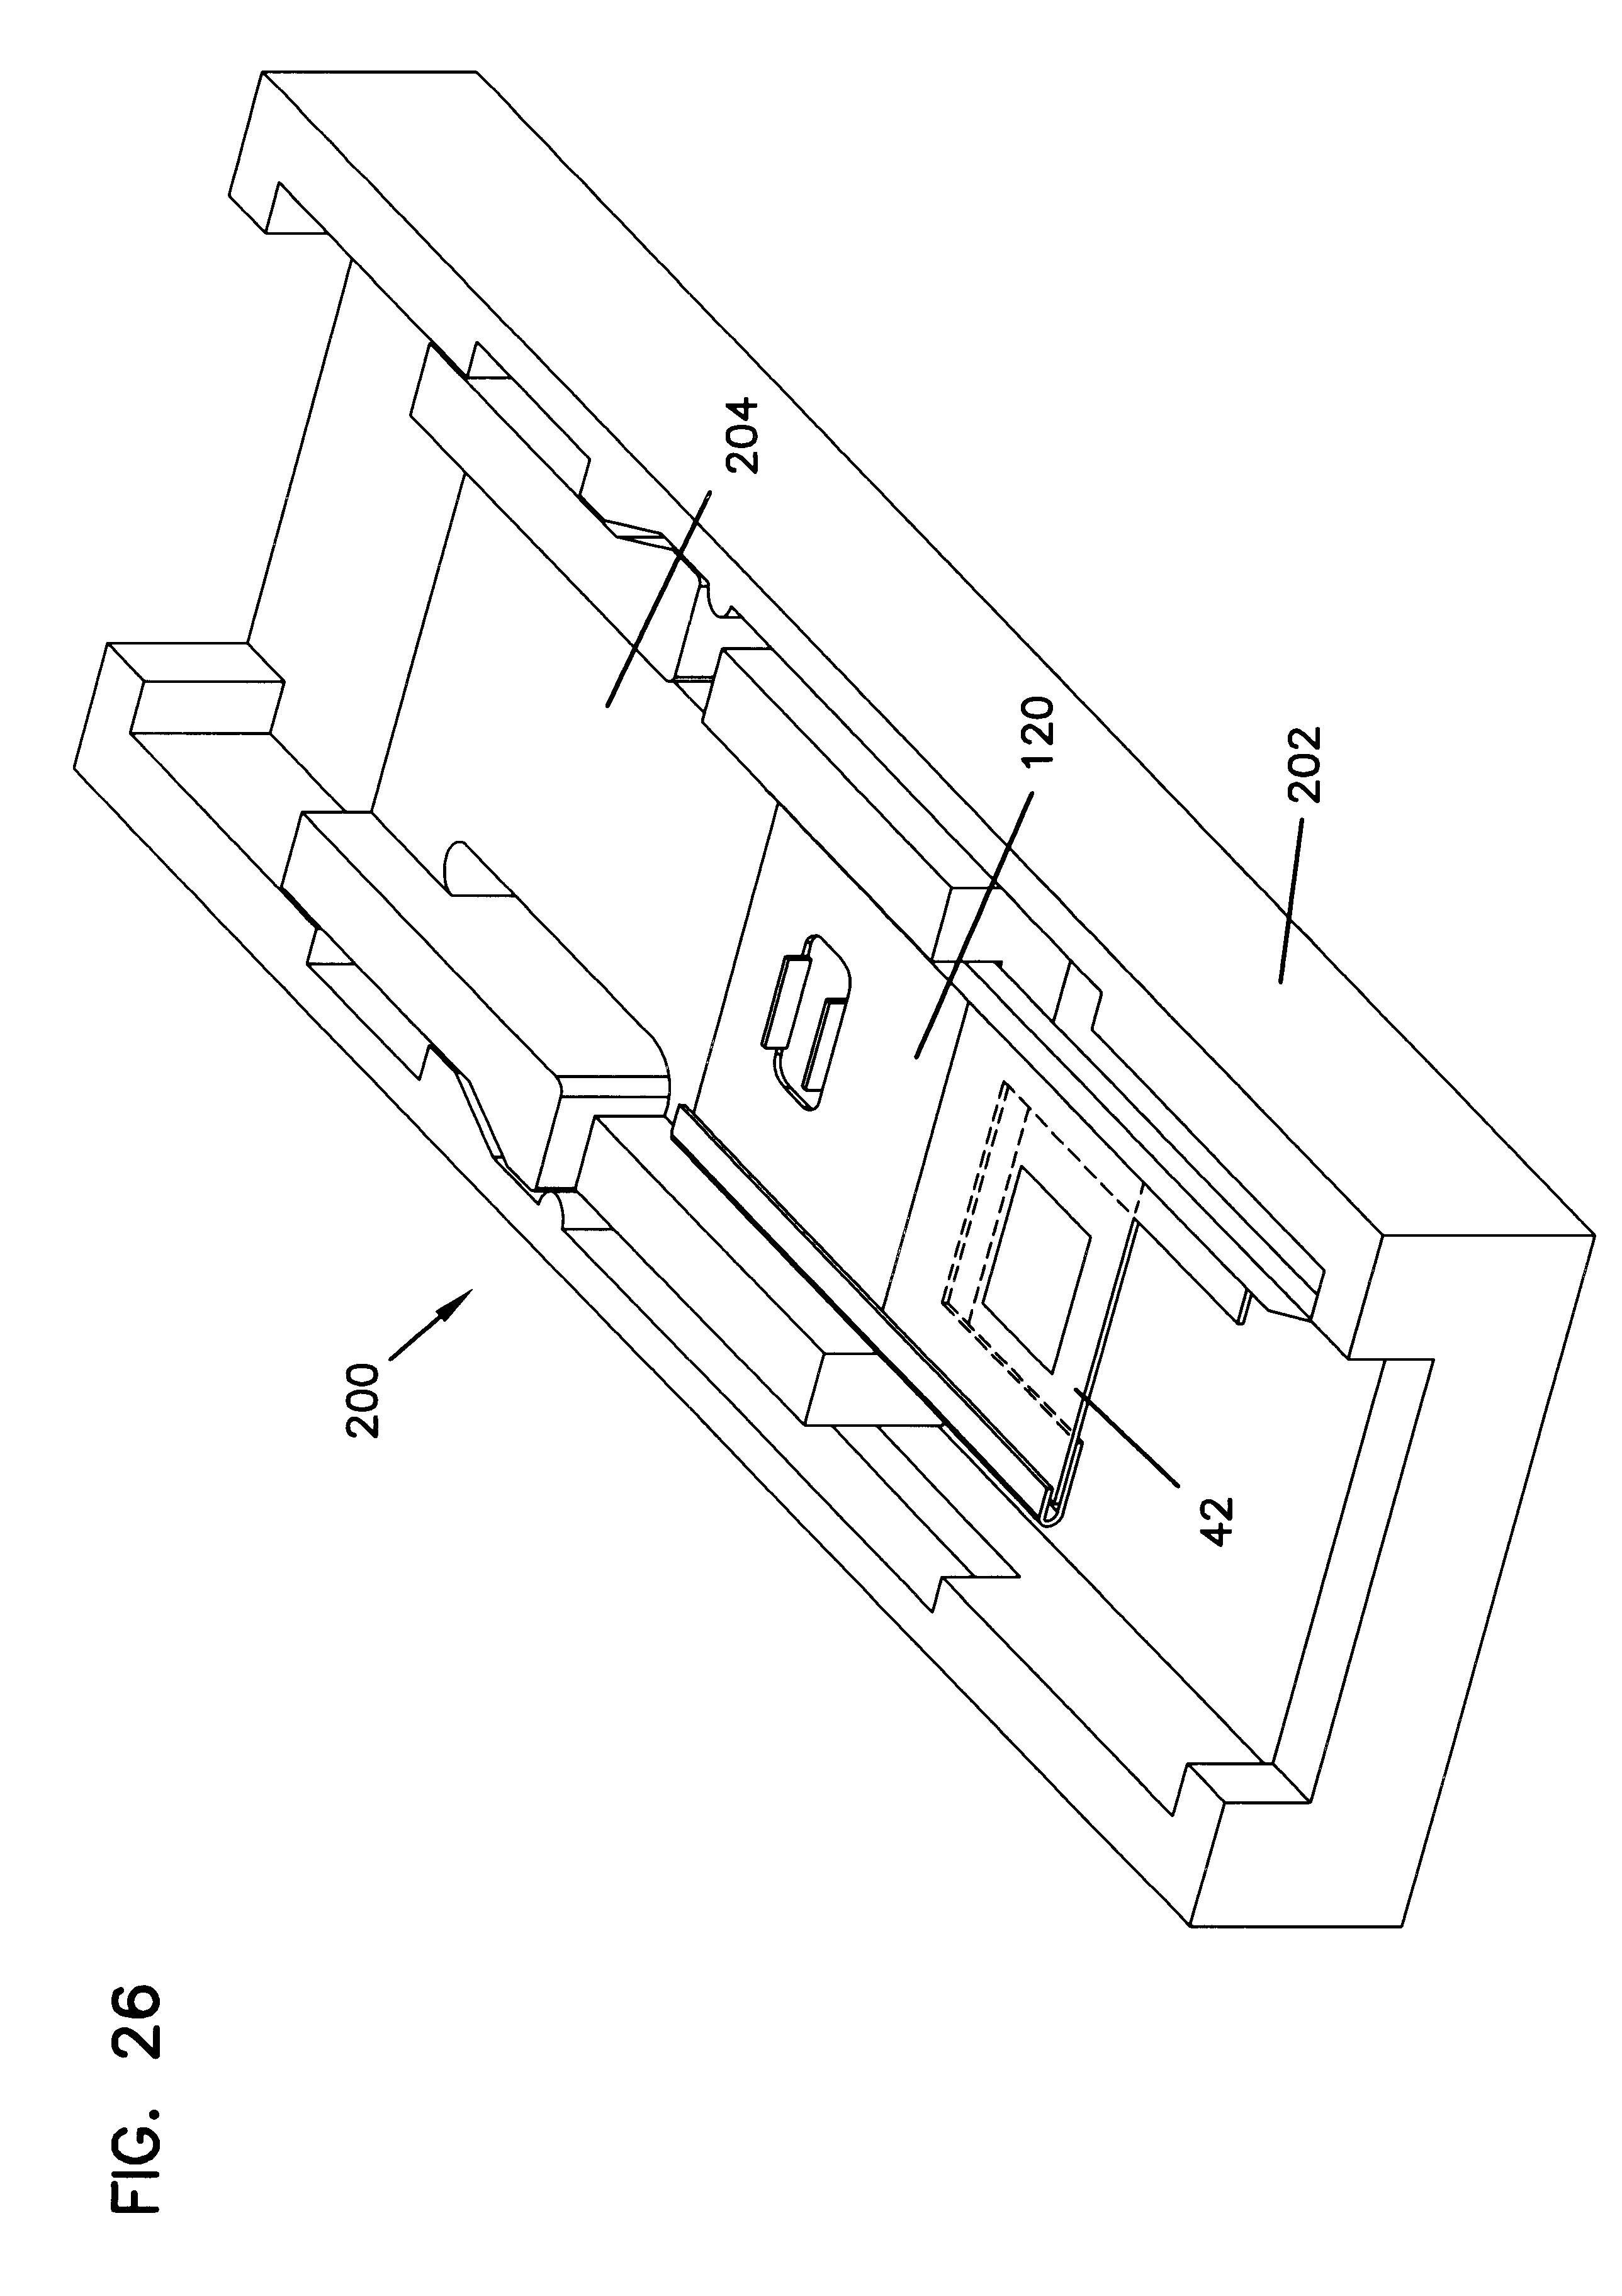 Us6175752b1 analyte monitoring device and methods of use patents